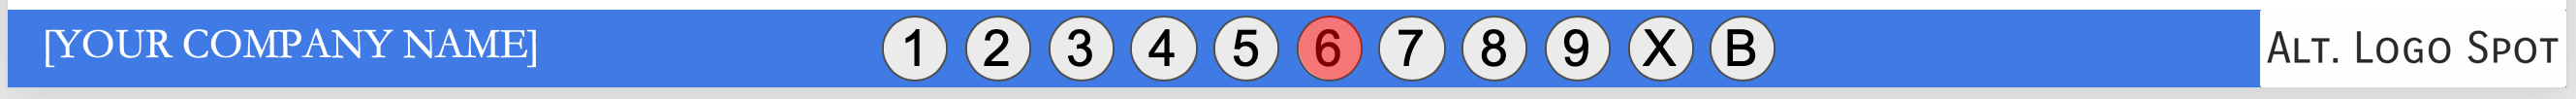 This is an image which is located at the bottom of every PowerPoint slide which is a series of 11 round buttons that when clicked navigate instantly to the numbered page